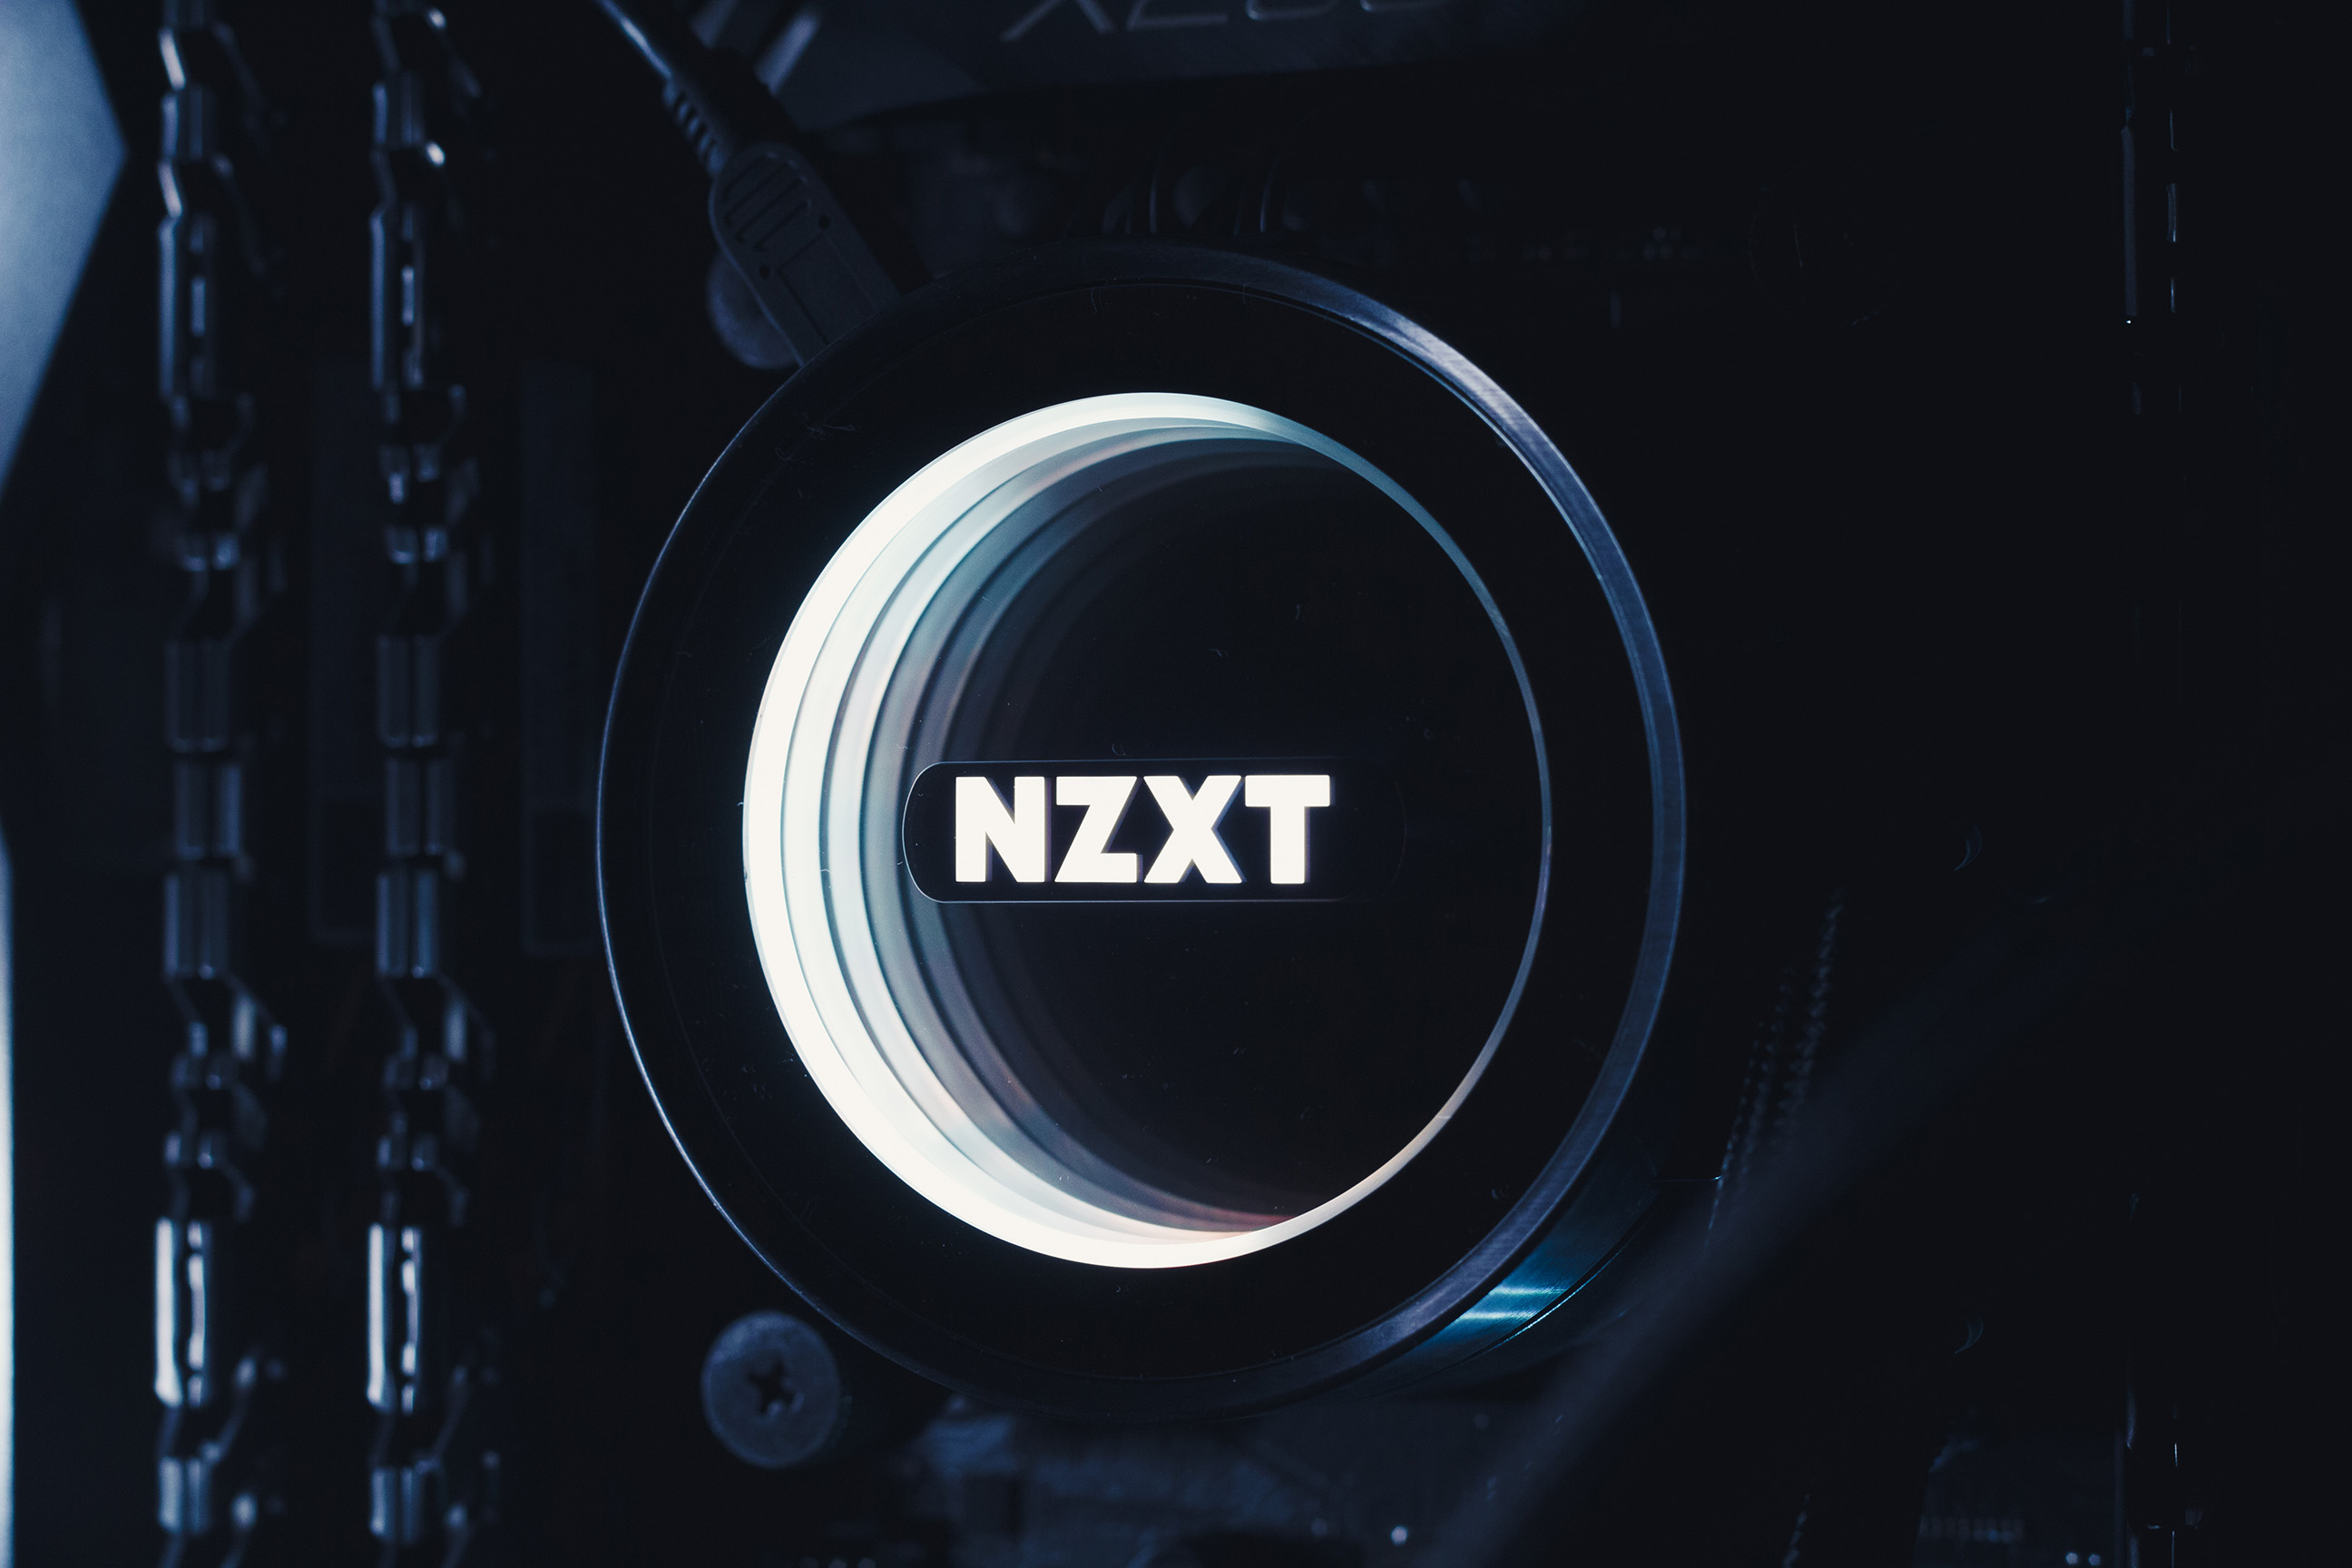 The NZXT Kraken X62 Is Slightly More Expensive Then Its Competitors But For That Premium You Get An Extremely Unique Aesthetic No Other Vendor Can